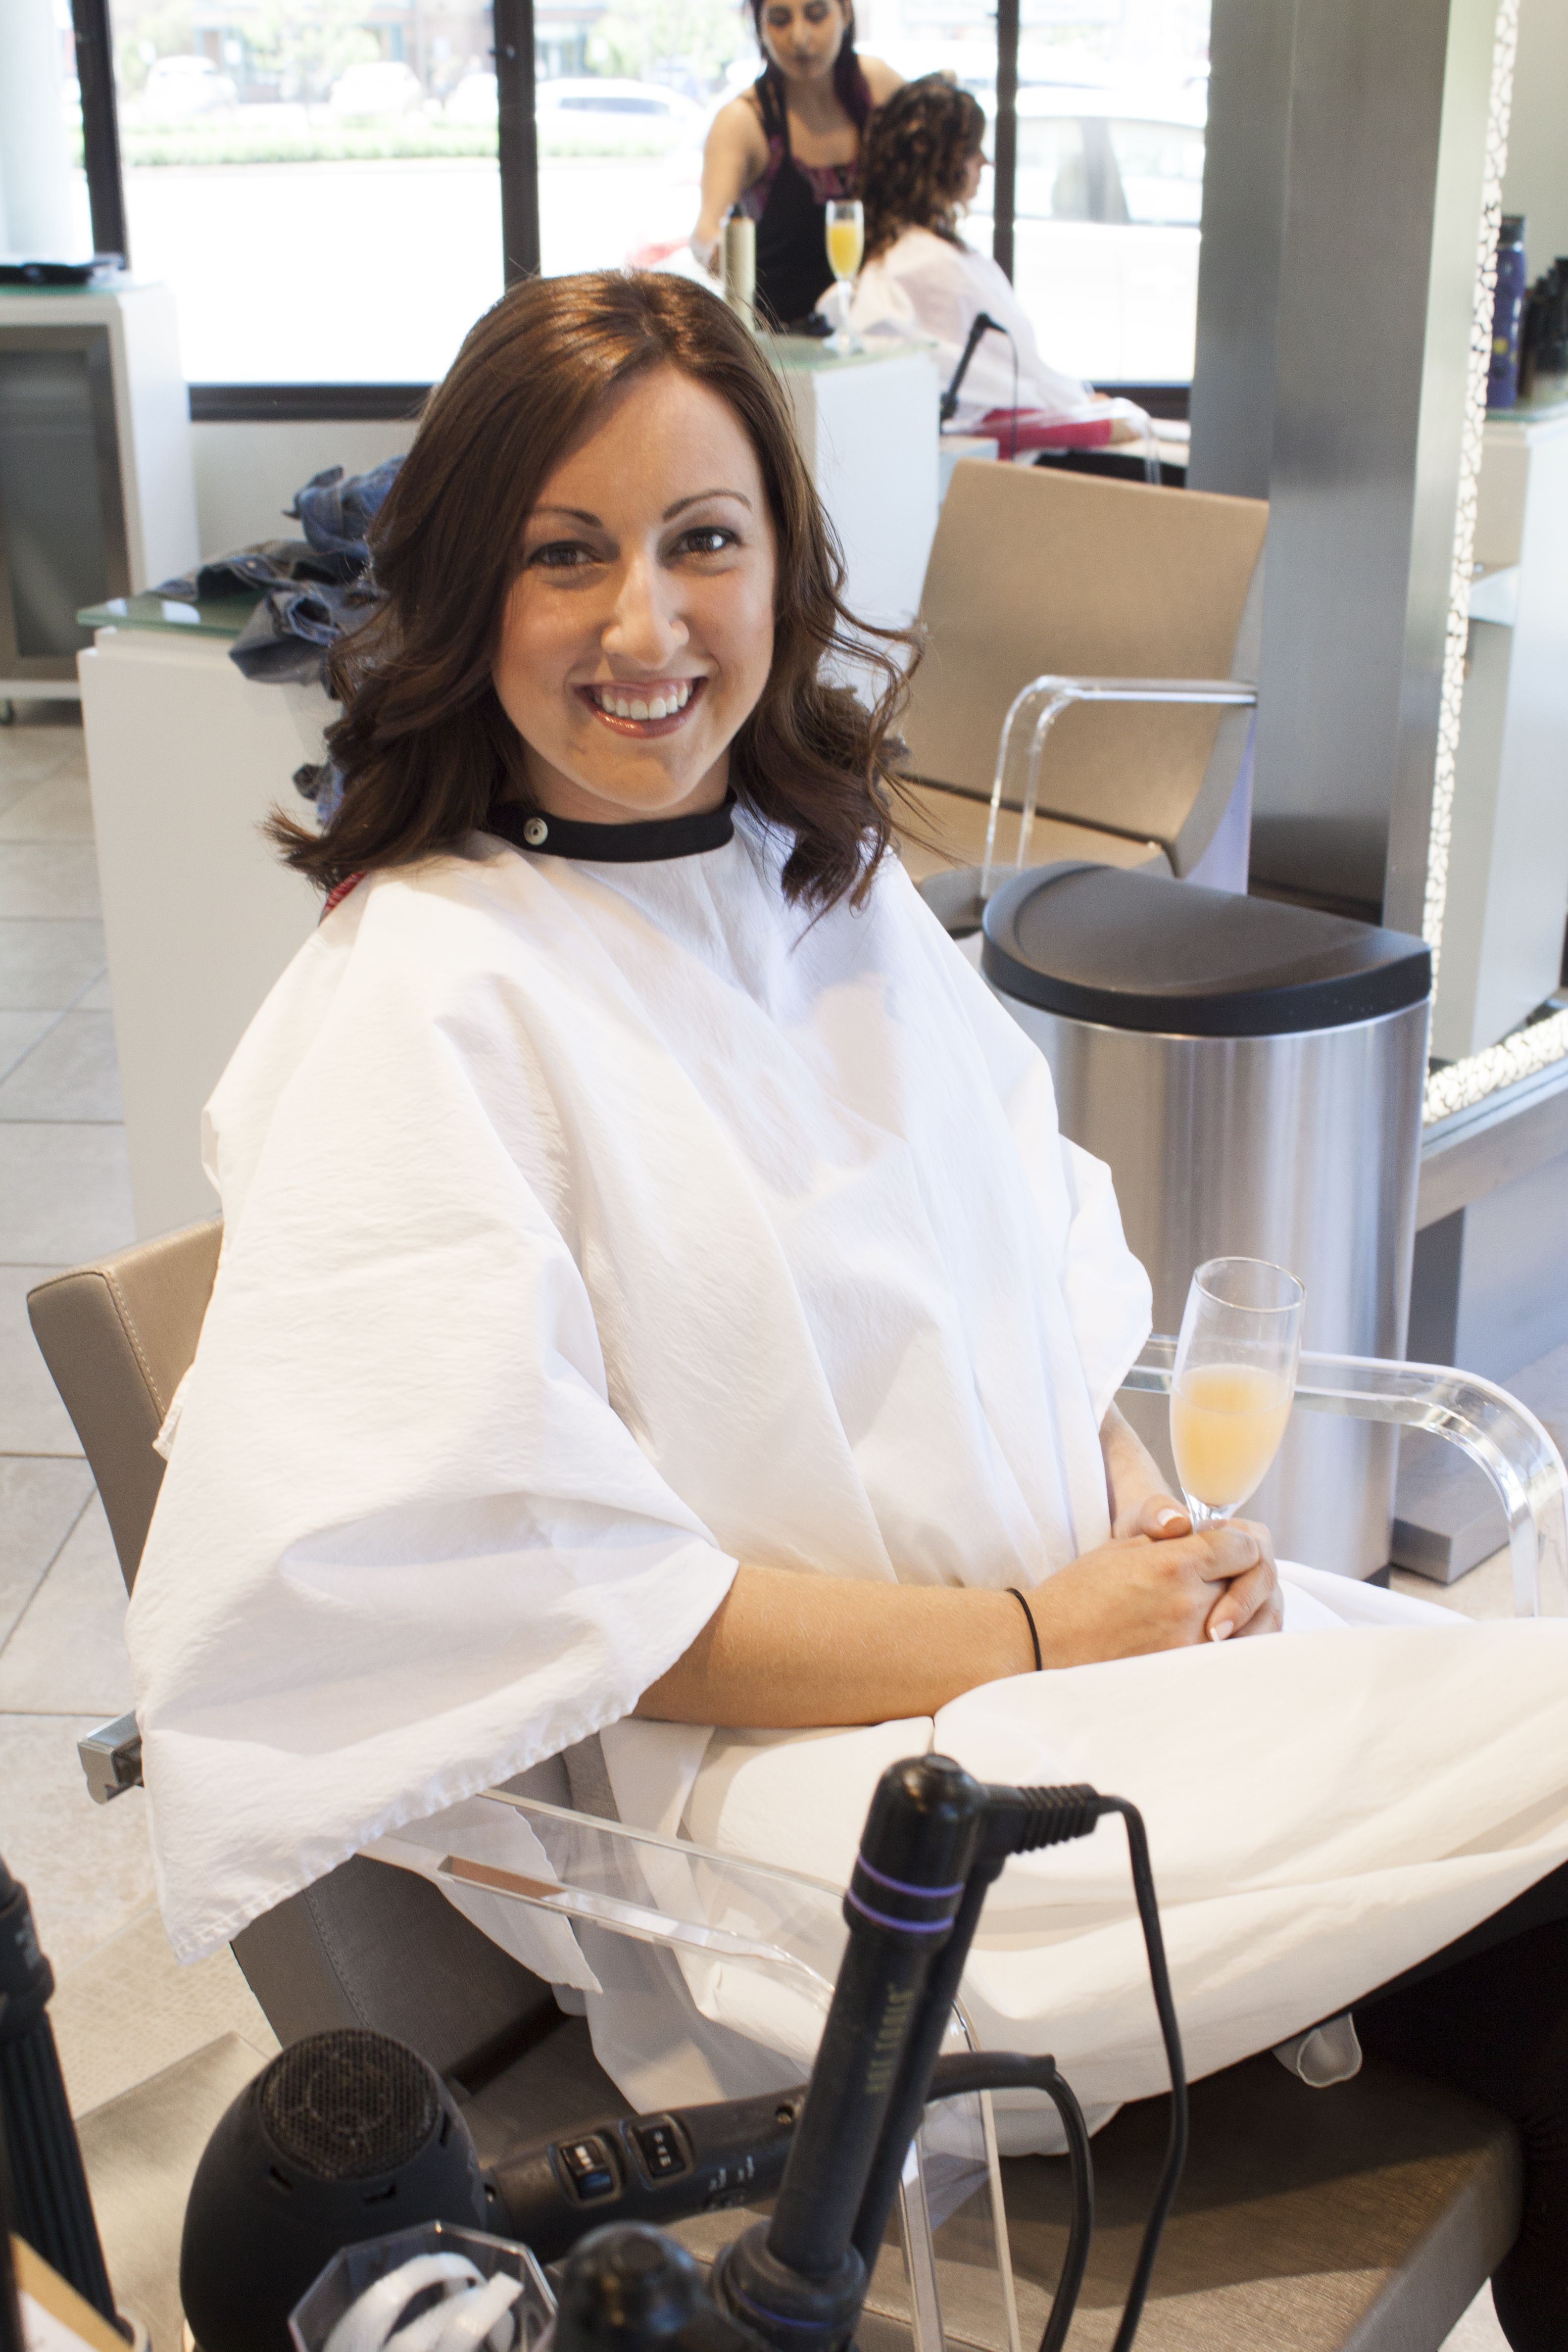 Pampering and mimosas on a warm sunny day? Yes please! #panacheerie #mimosas #beautiful #bridesmaid